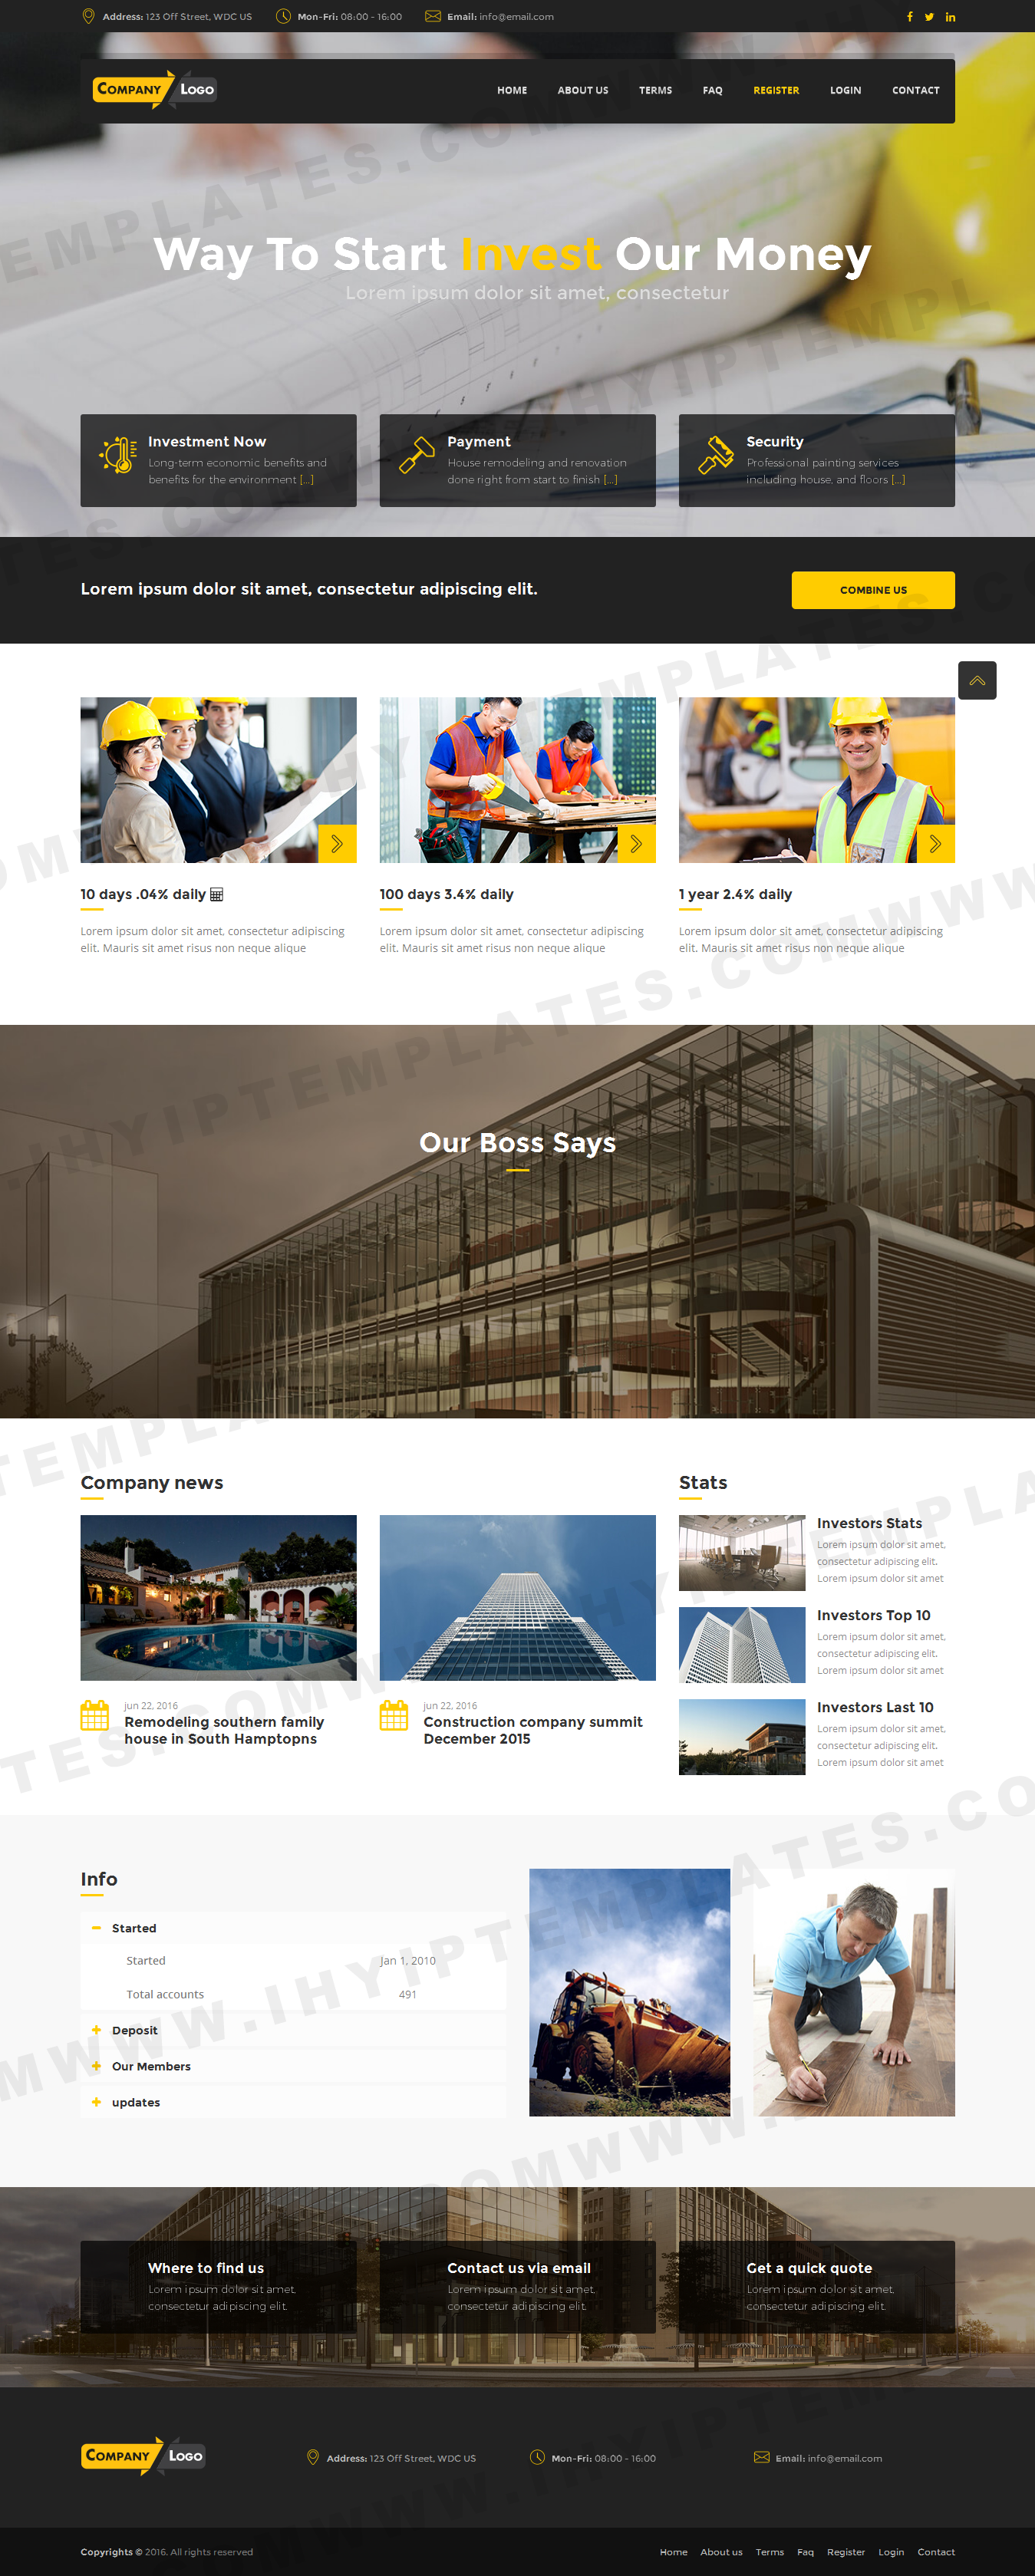 ihyip templates launched new hyip web design hyip script template